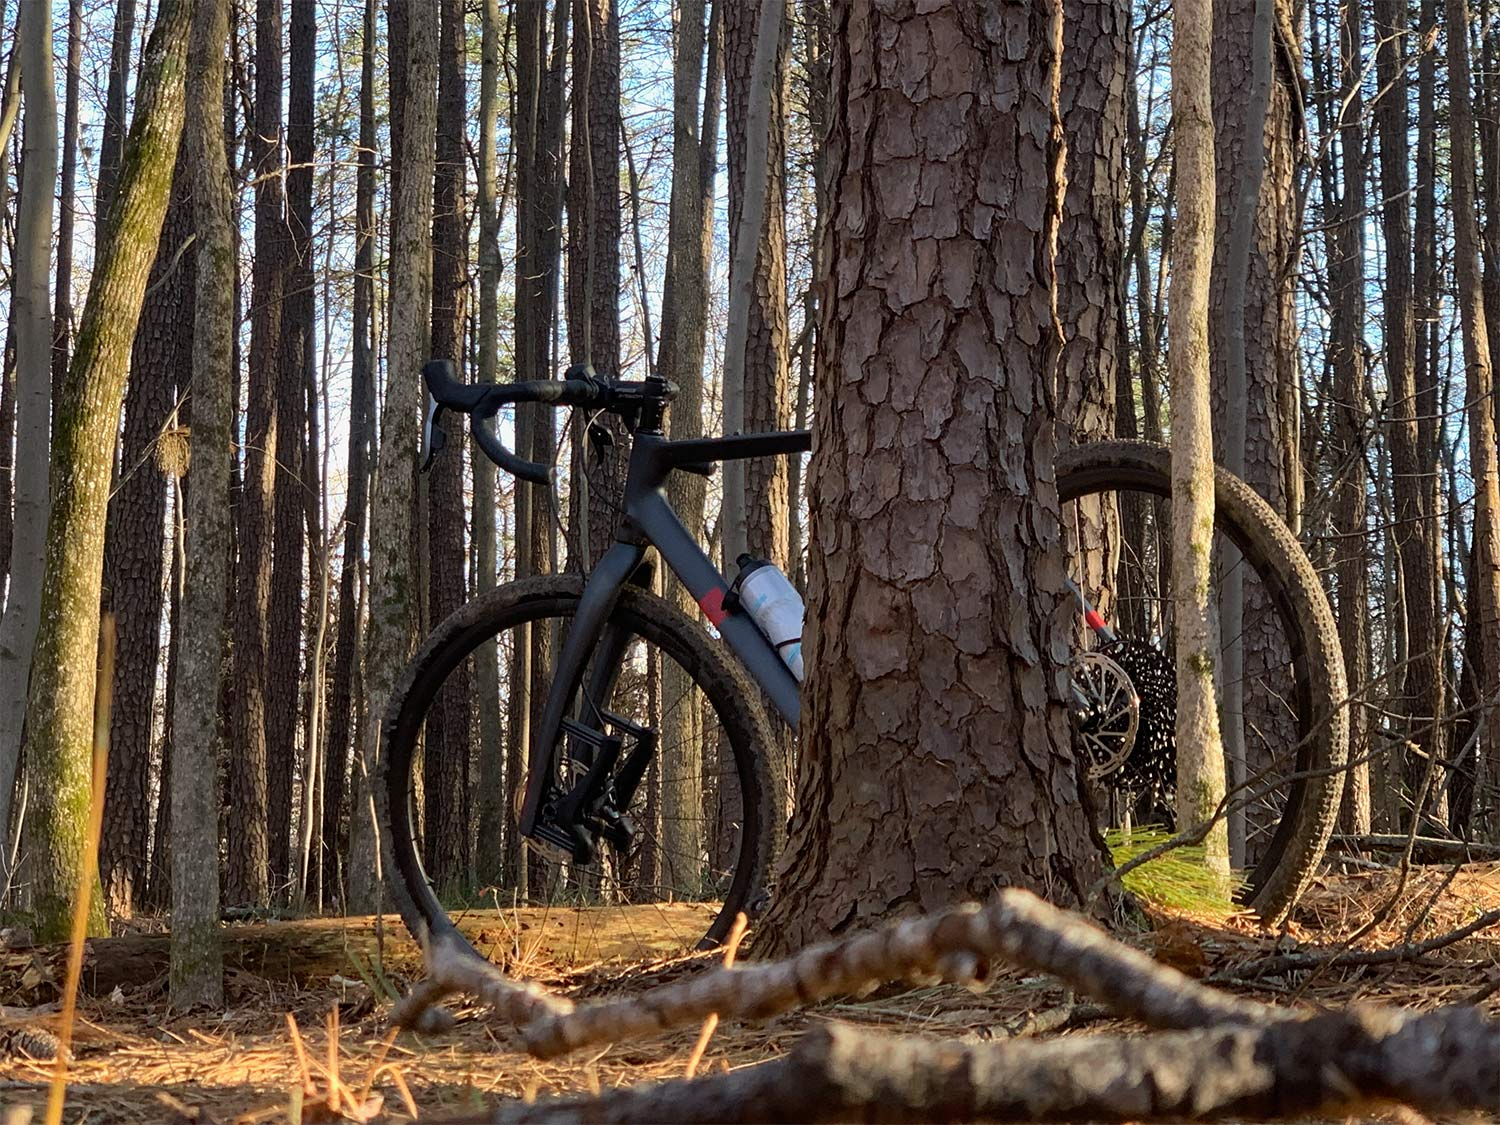 e13 xcx race carbon gravel wheels on a lauf true grit gravel bike next to a tree